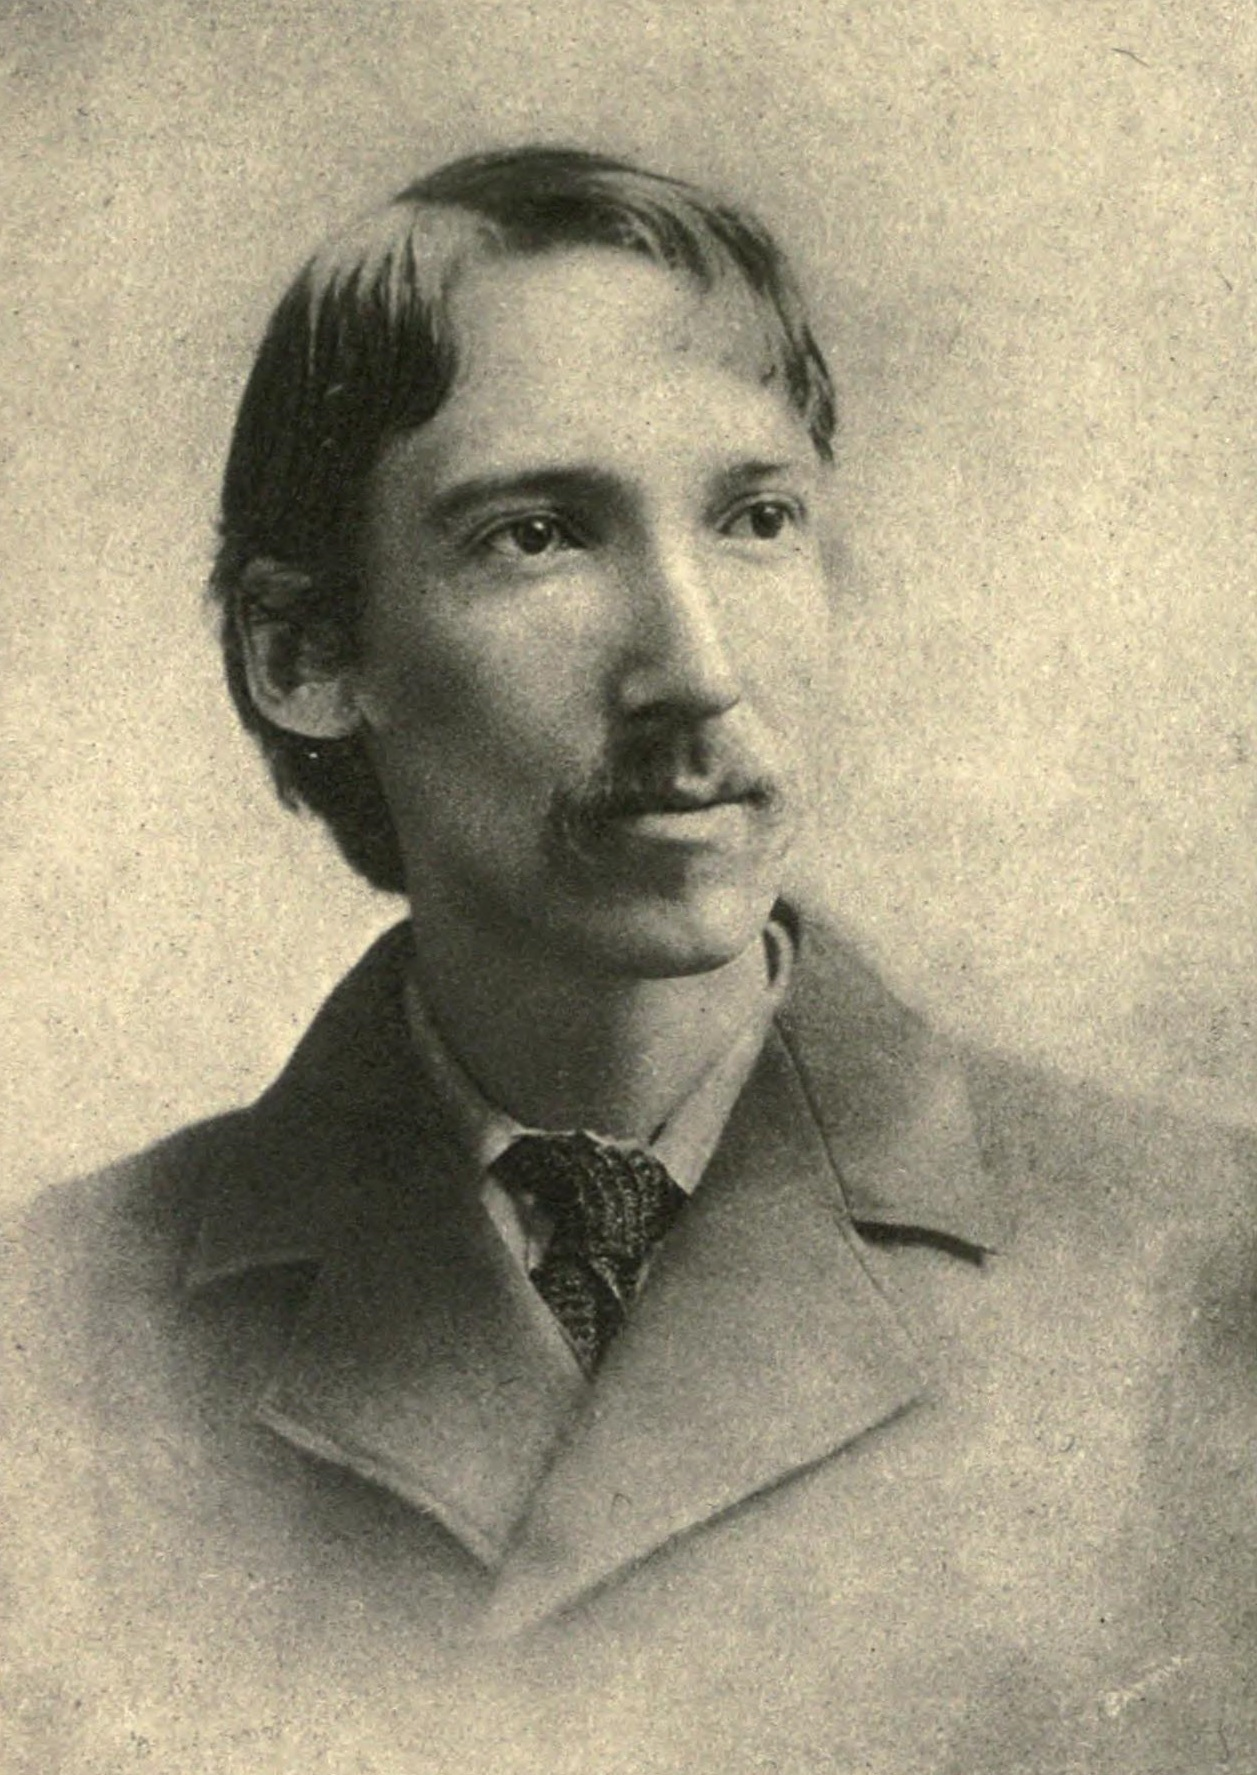 robert louis stevenson Robert louis balfour stevenson was born at edinburgh, scotland, on november 13, 1850 he was a sickly youth, and an only son, for whom his parents had high hope.